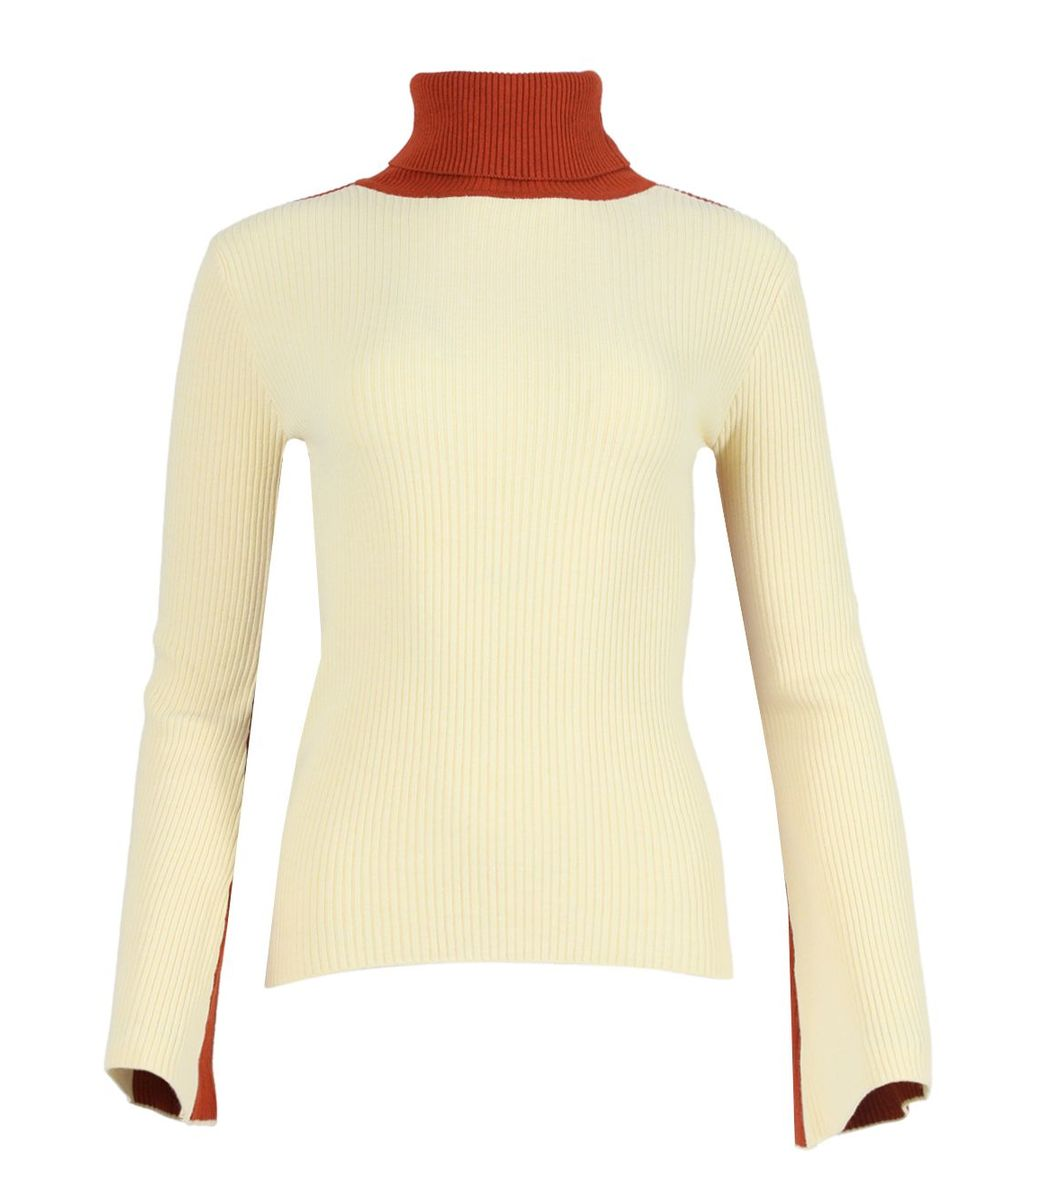 Valentine Witmeur Knits Pale Yellow Knit  Turtleneck Top